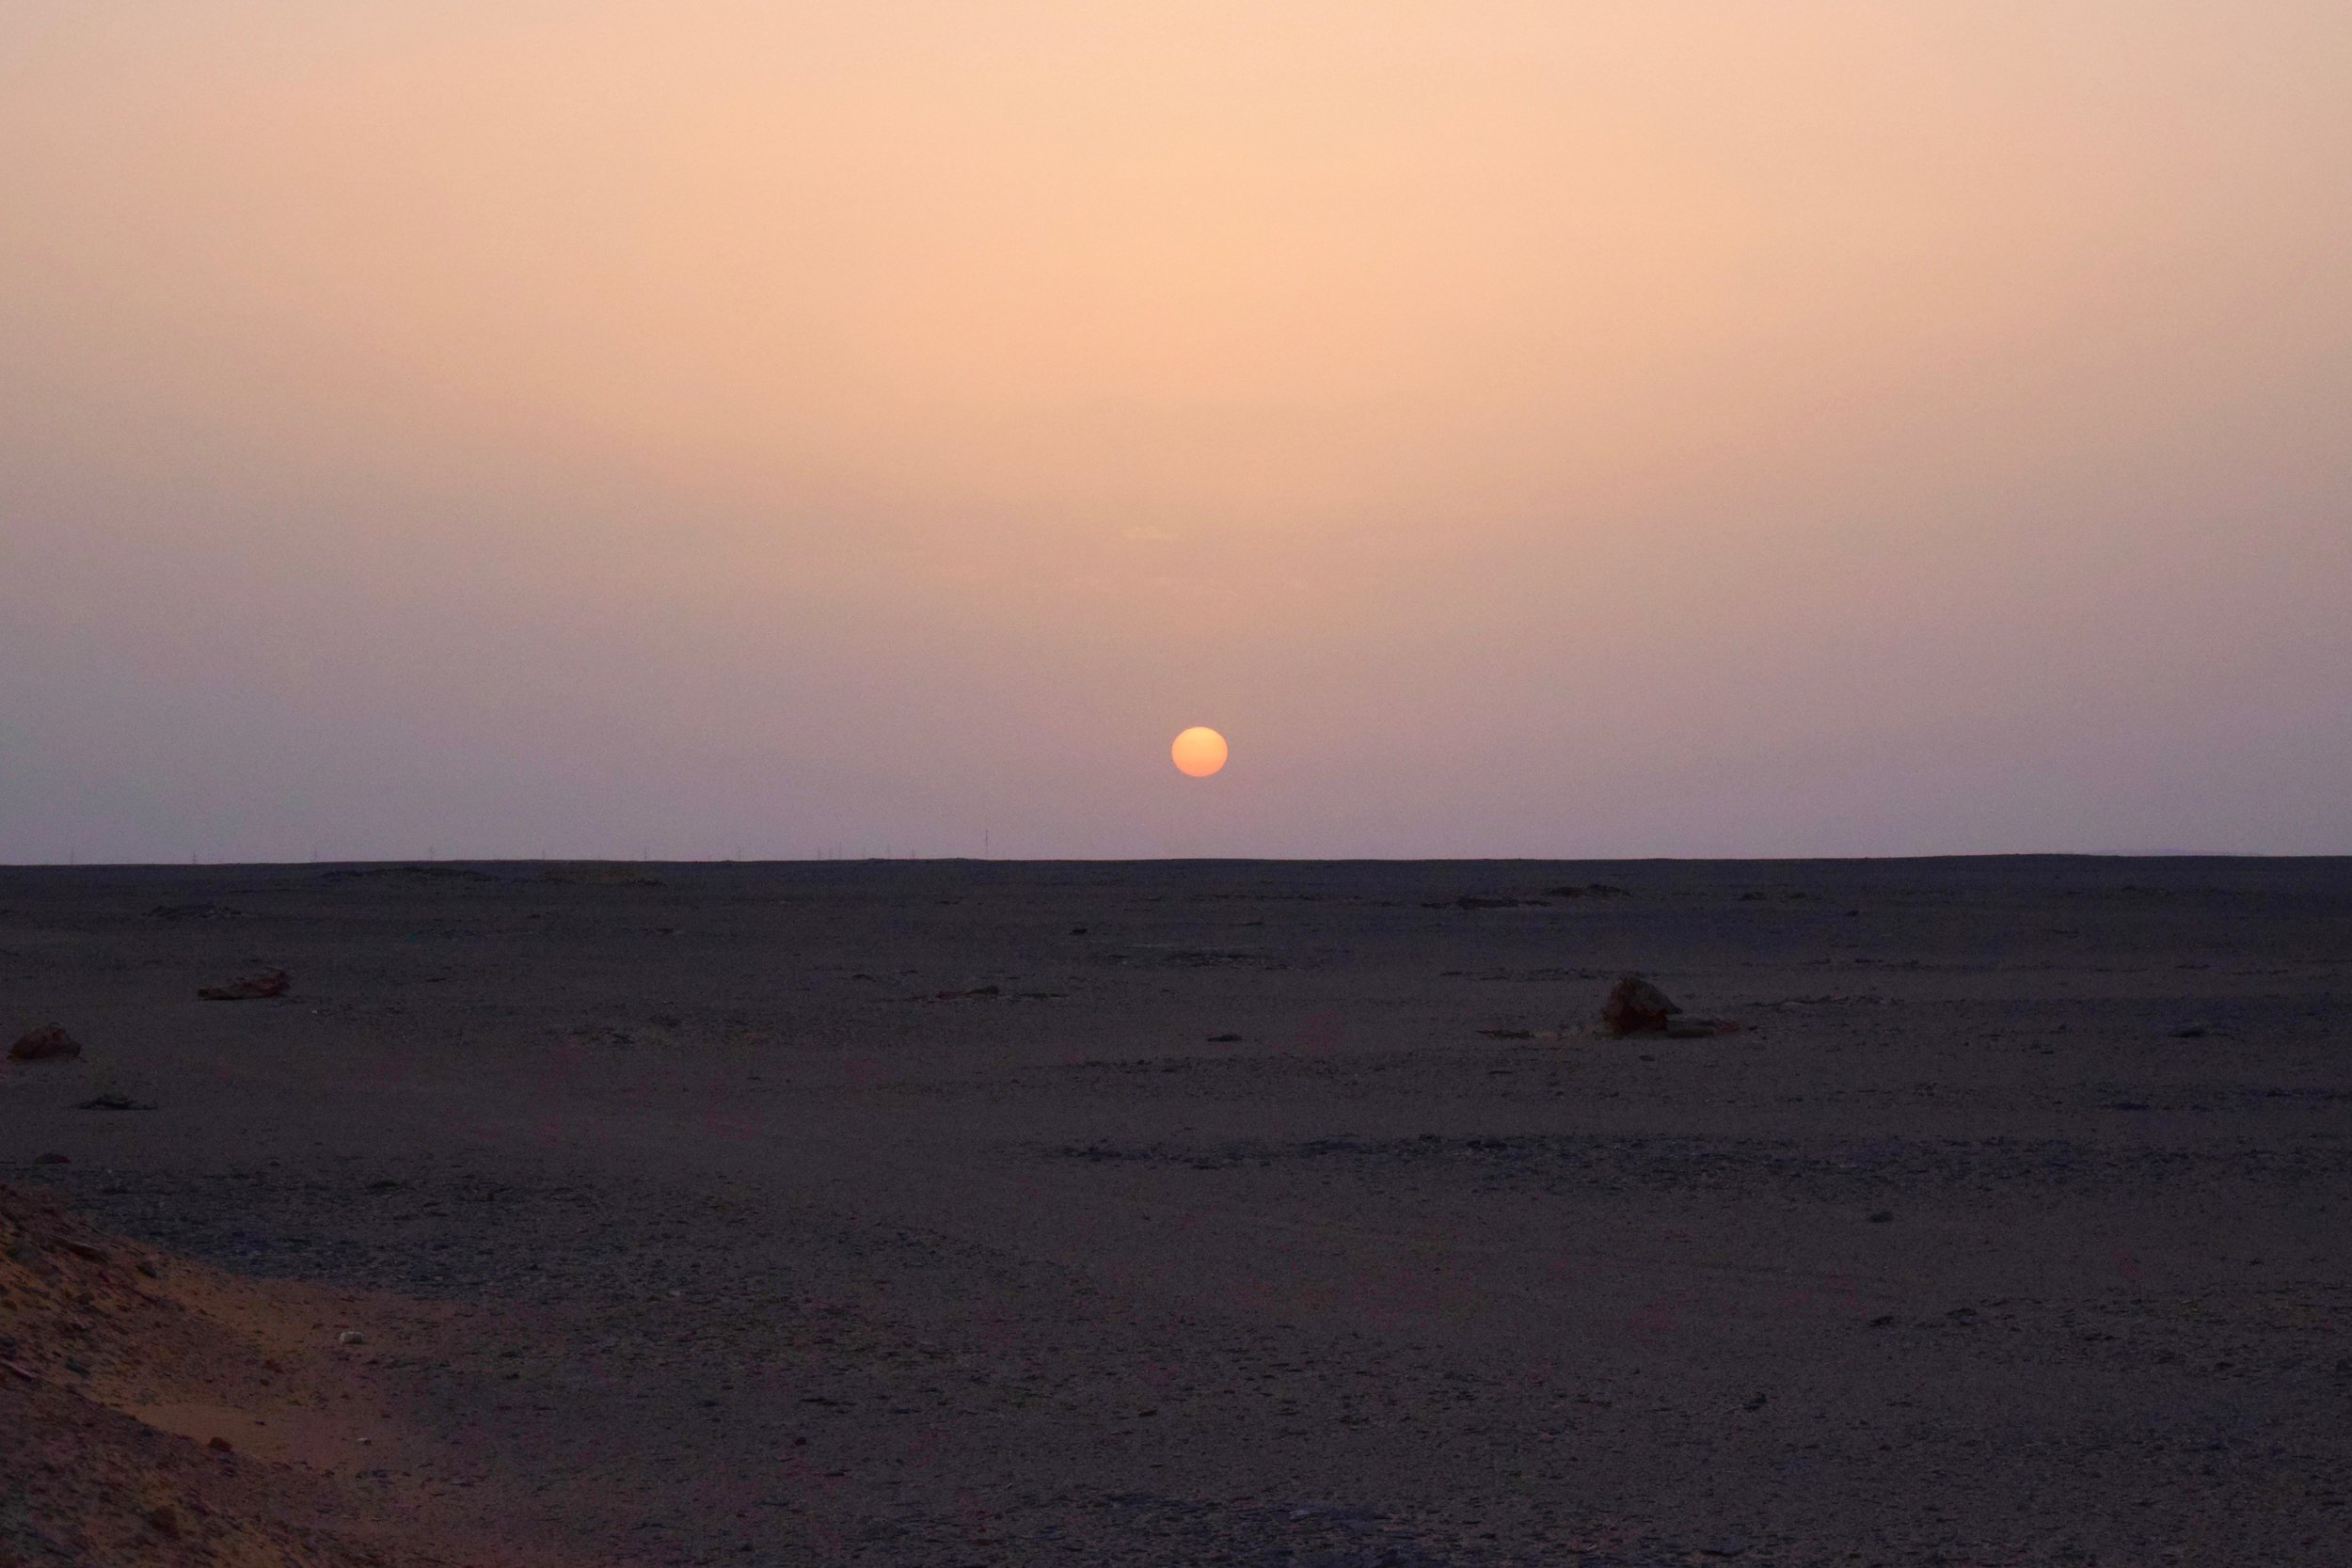 Sunrise on the way to Abu Simbel